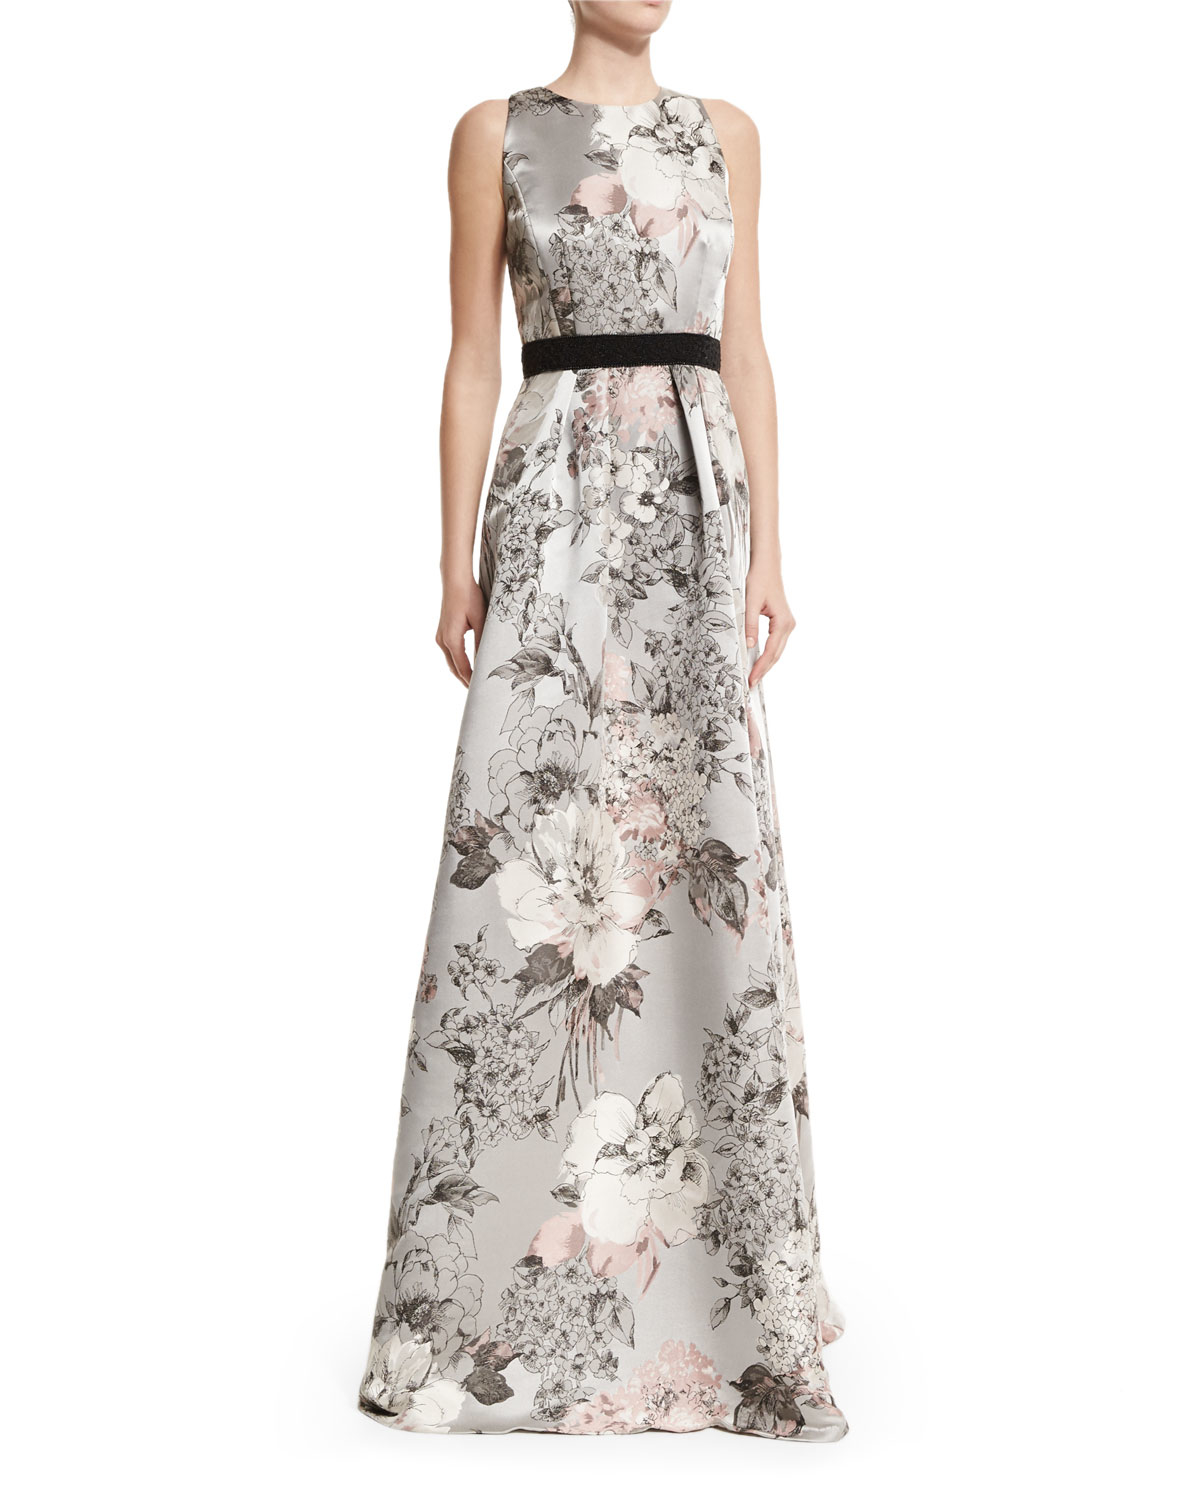 Lyst - Carmen Marc Valvo Sleeveless Floral-print Gown